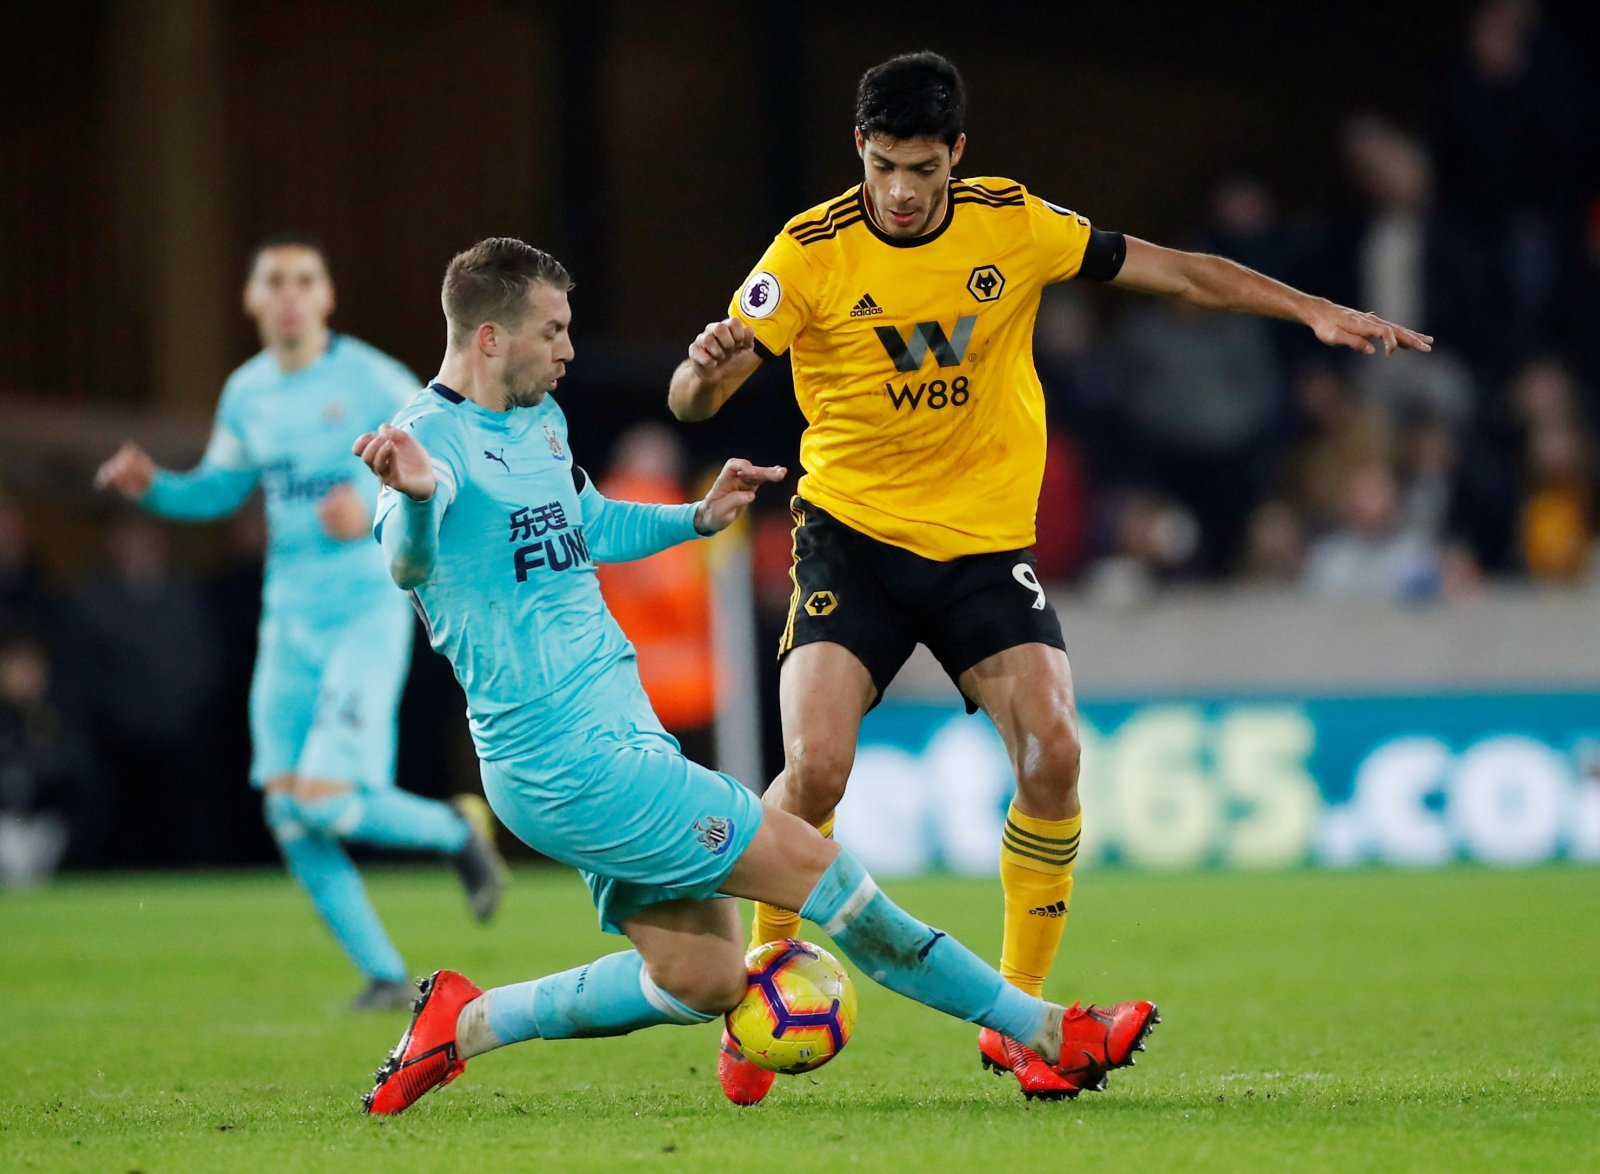 Wolves: Fans react to Raul Jimenez substitution